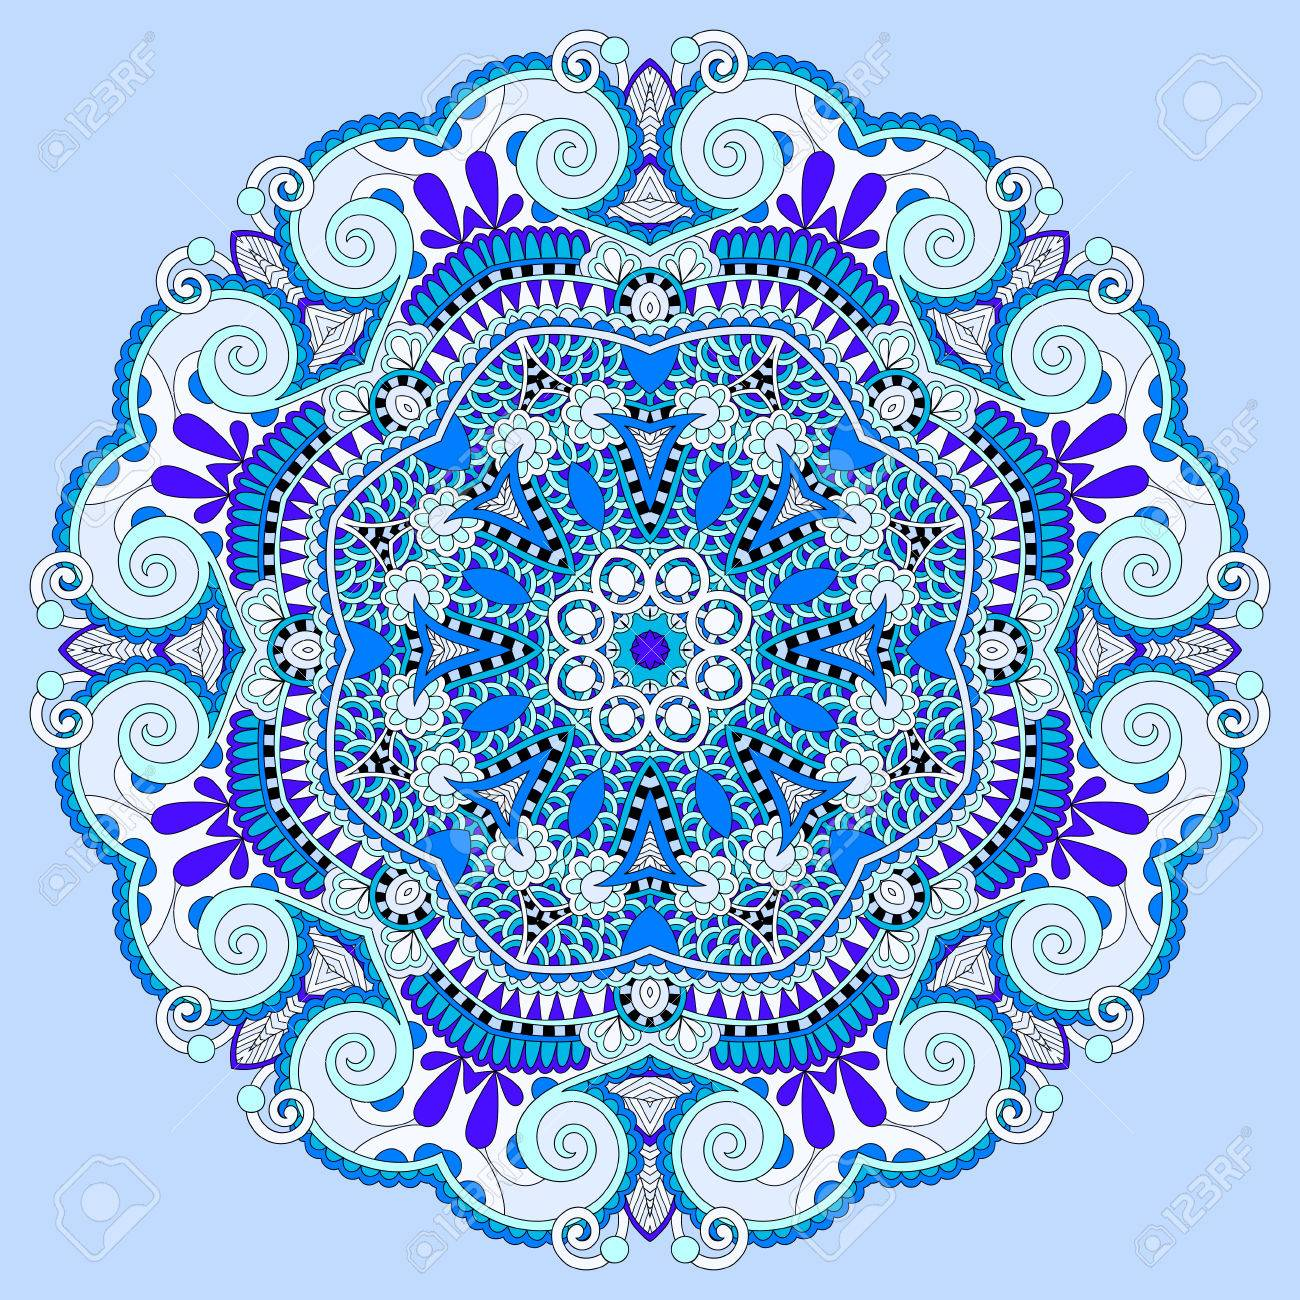 Mandala blue circle decorative spiritual indian symbol of lotus mandala blue circle decorative spiritual indian symbol of lotus flower round ornament pattern stock mightylinksfo